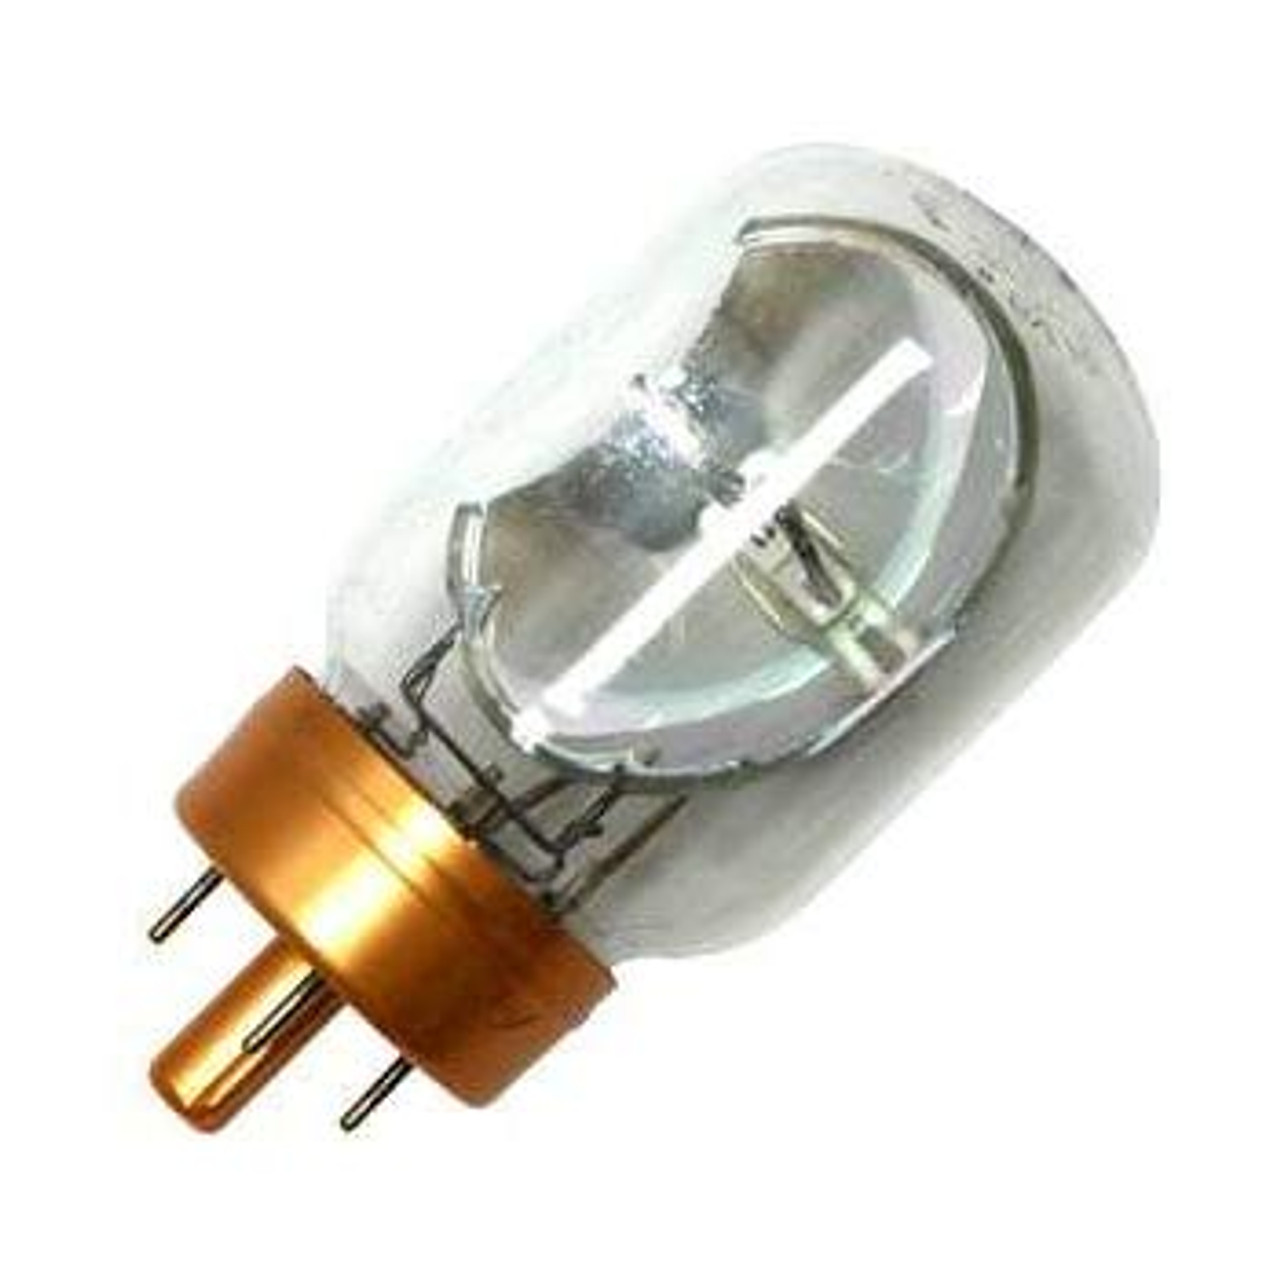 A-V Sales Corp. - 8mm Lytlevision 200 - Projector - Replacement Bulb Model- DCA, DEF